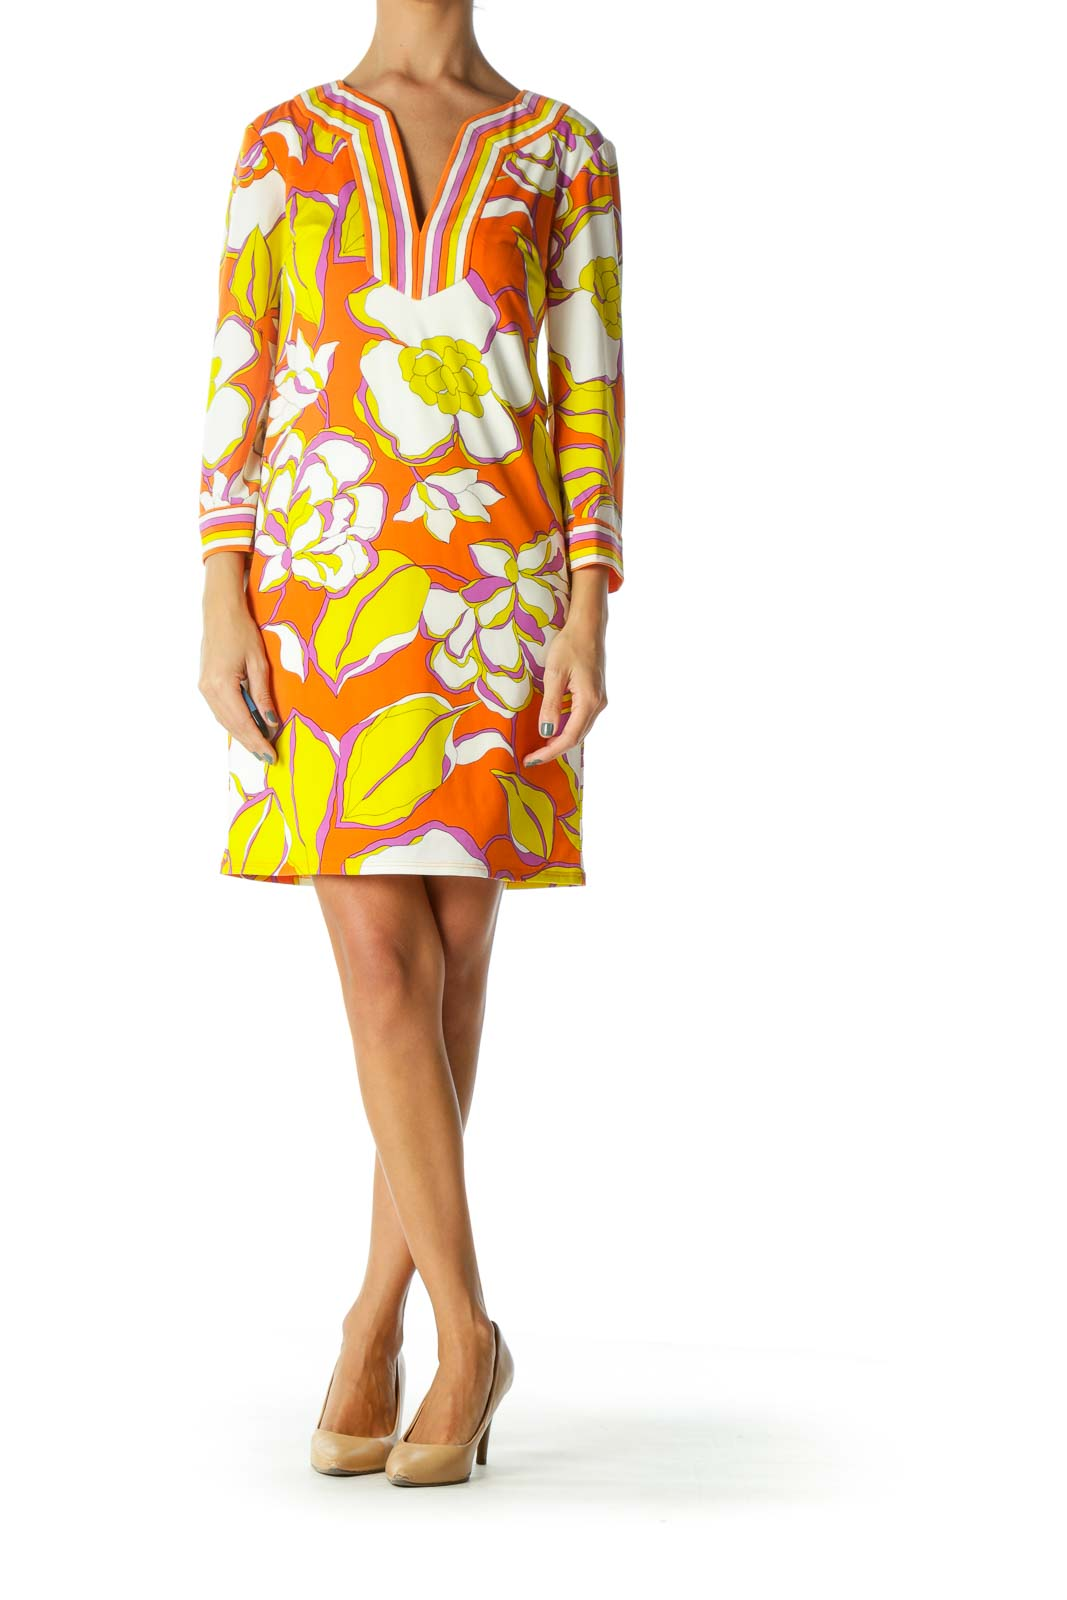 Purple Cream Yellow Orange V-Neck Floral Print Stretch Dress